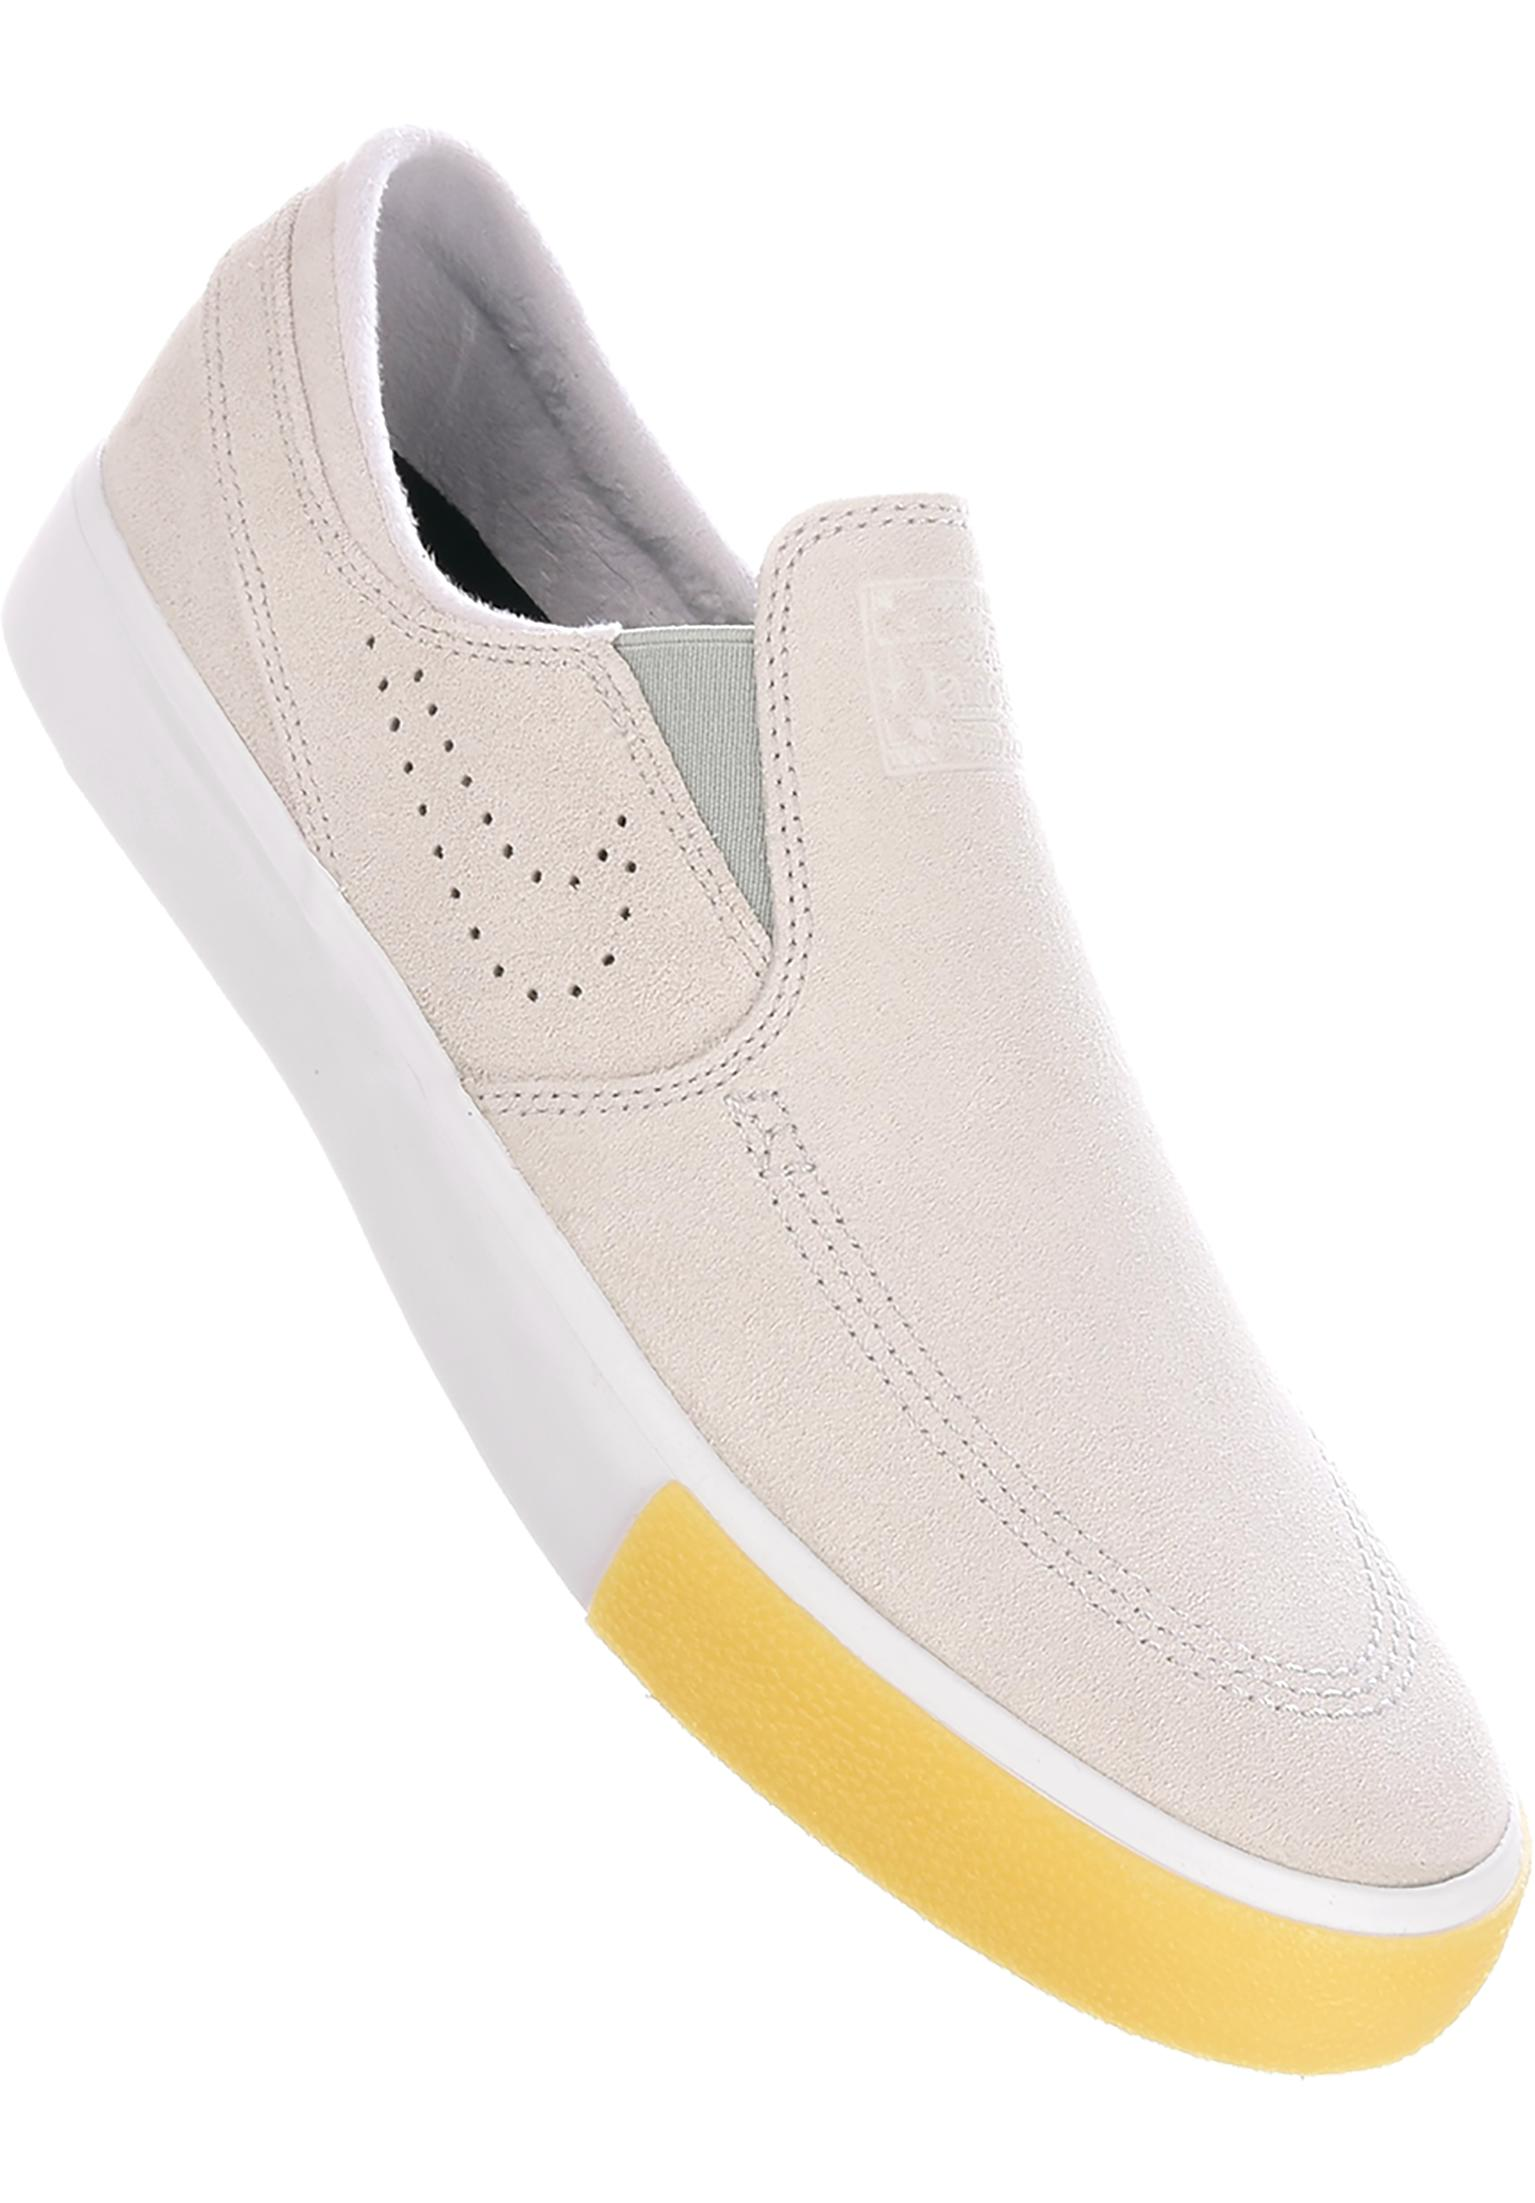 a94532fdf8b9 Zoom Stefan Janoski Slip On RM SE Nike SB All Shoes in white-white for Men  | Titus